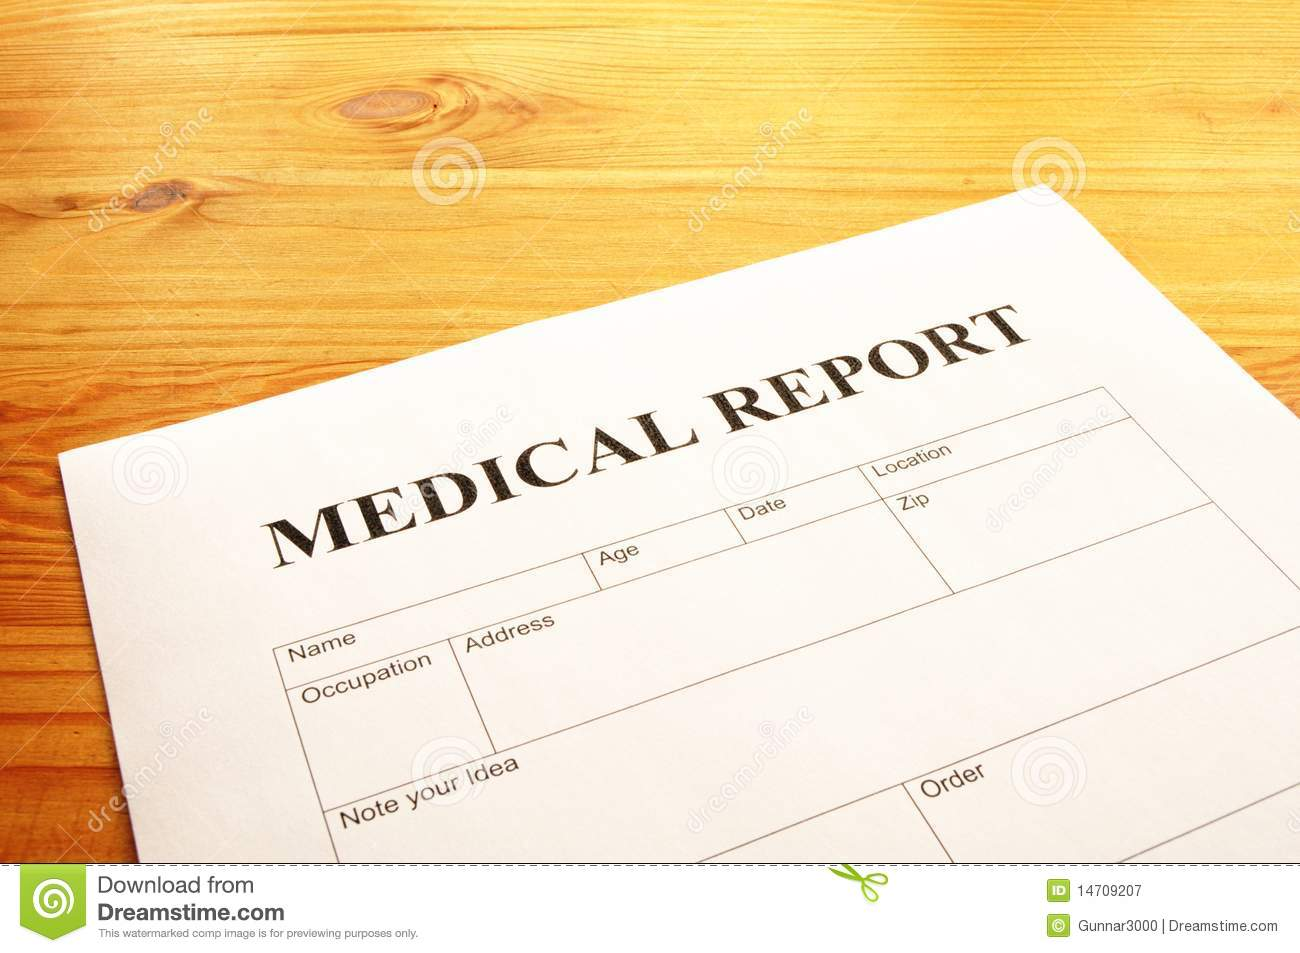 Medical report stock image  Image of emergency, clinic